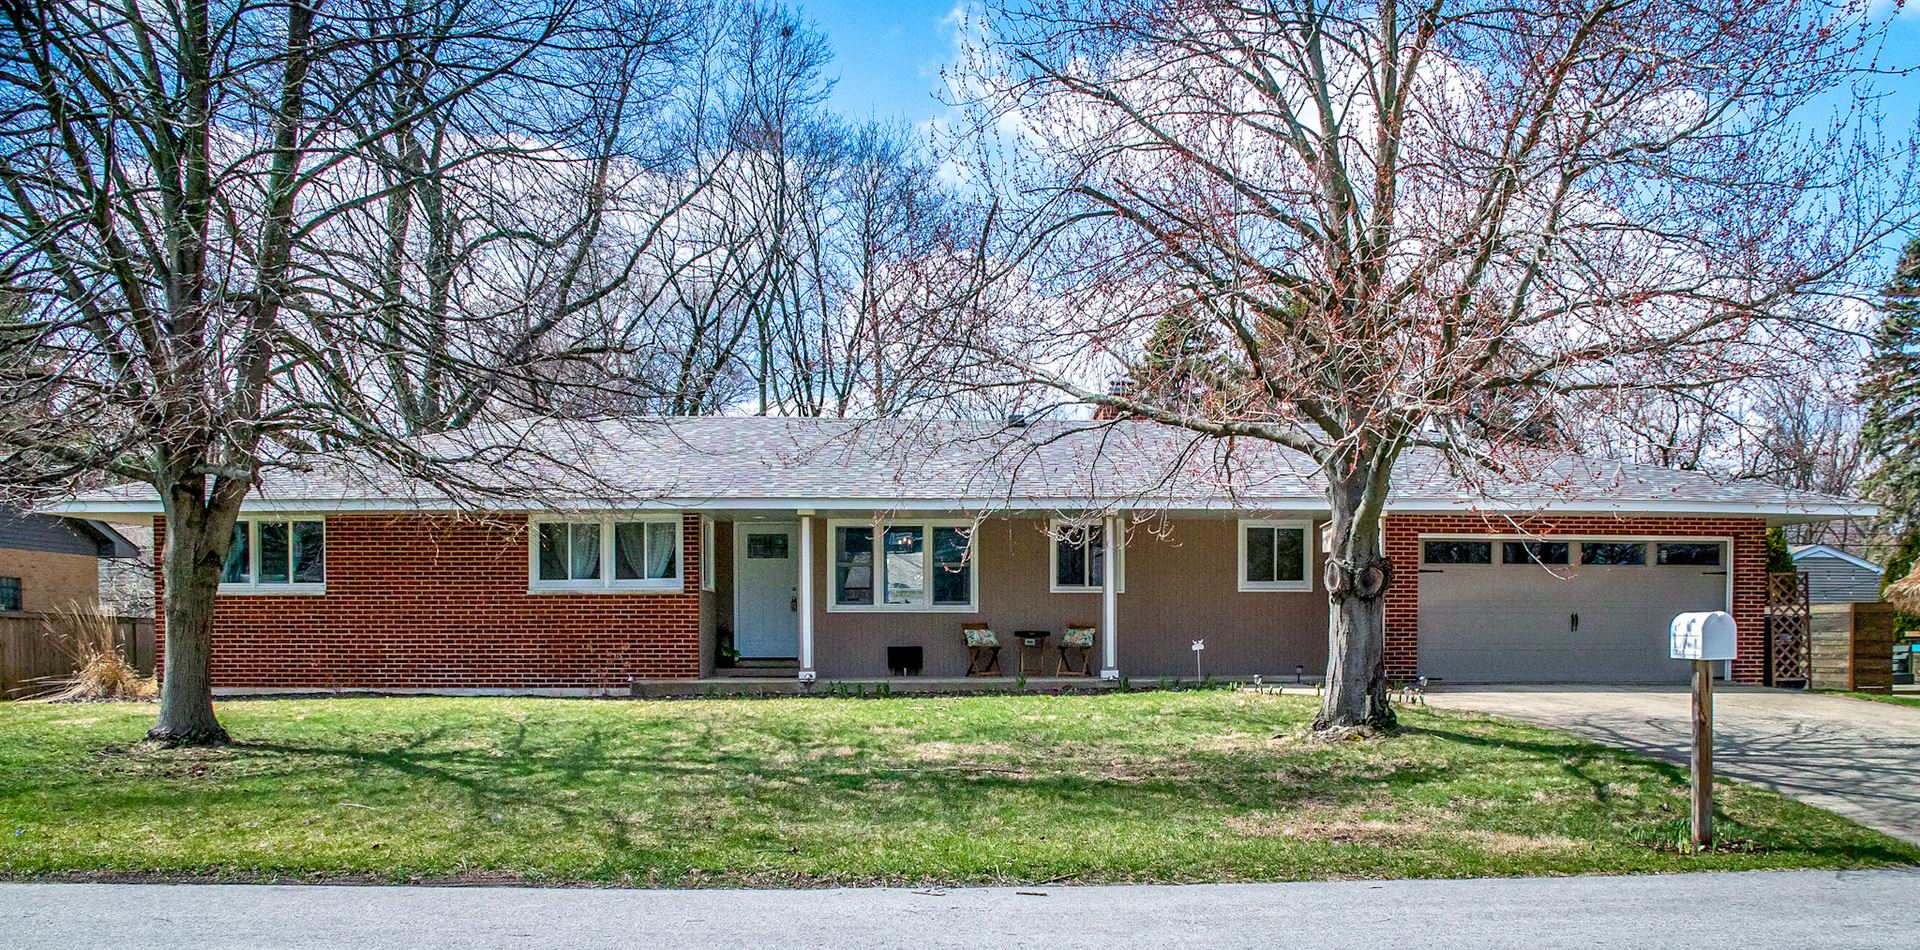 422 Lakeside Road, Crystal Lake, IL 60014 - #: 10682381